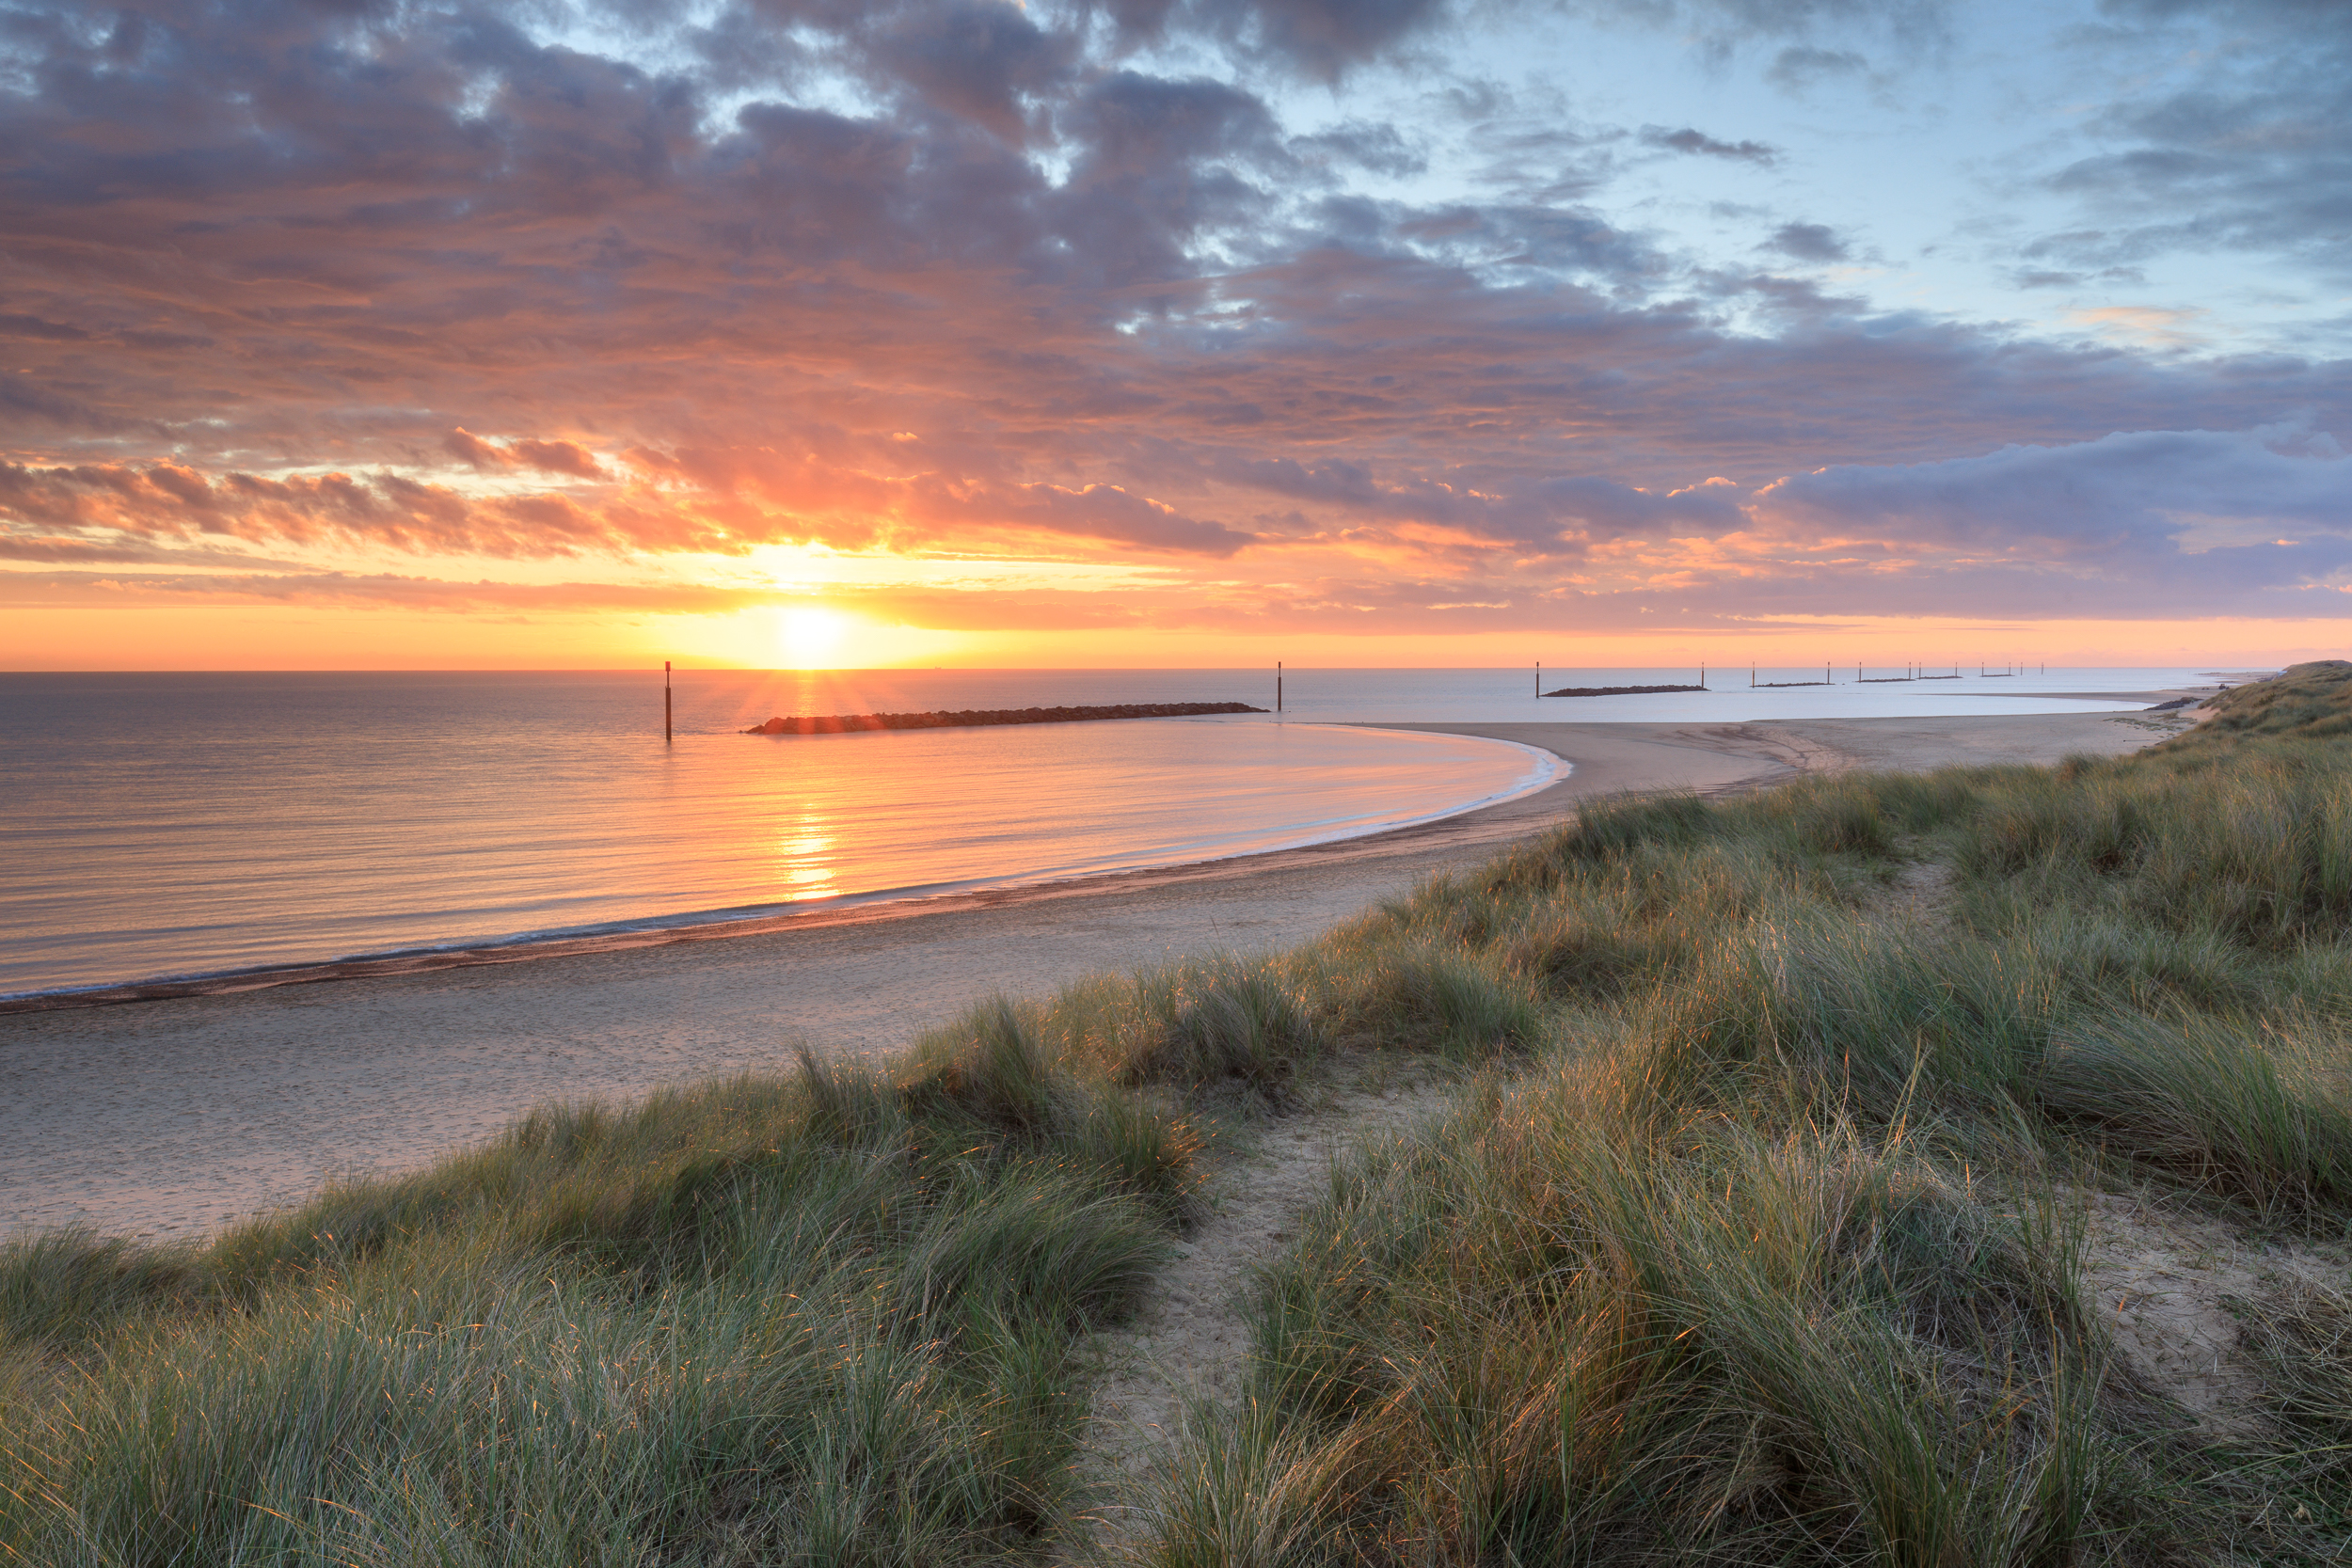 This sunrise on the Norfolk coast was the perfect opportunity to use the a reverse ND grad. Canon 5D mkIV, 16-35mm @ 24mm, 1/2, f16, ISO 200, Lee 0.9 reverse ND grad